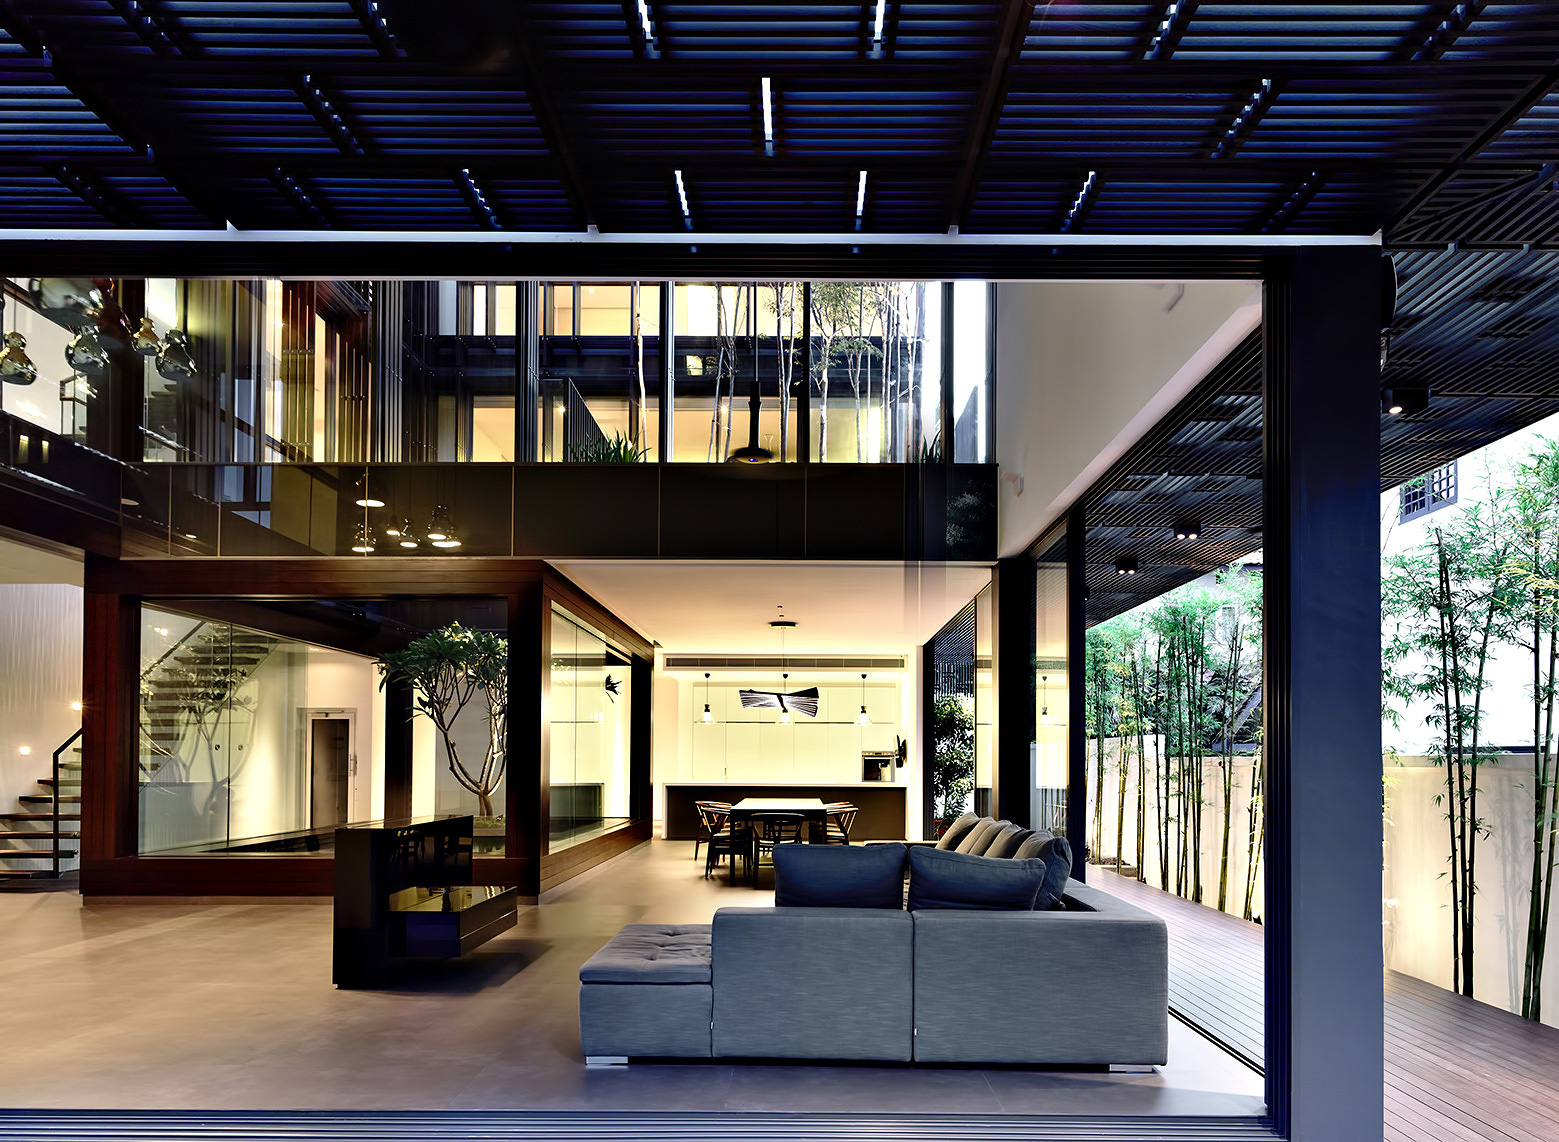 Vertical Court Luxury Residence – Greenbank Park, Singapore